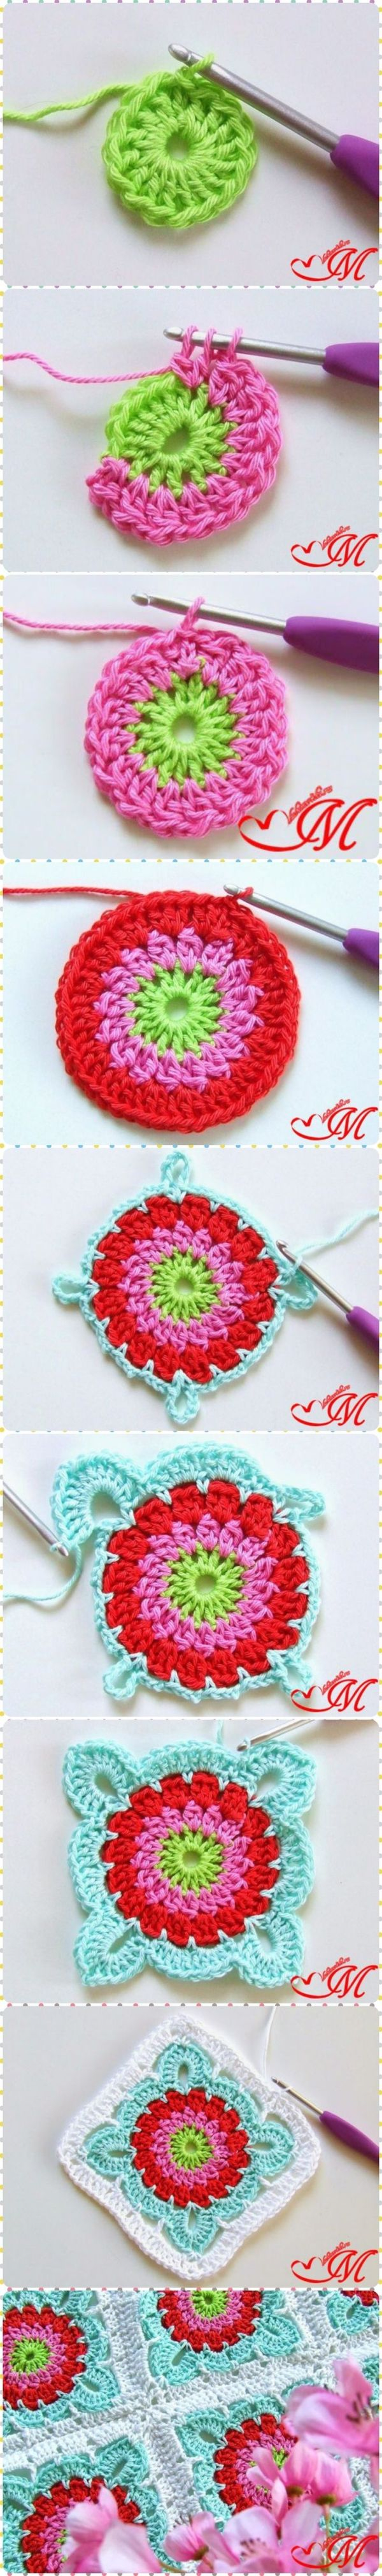 How to Crochet Pretty Granny Square Blanket with Free Pattern by ...